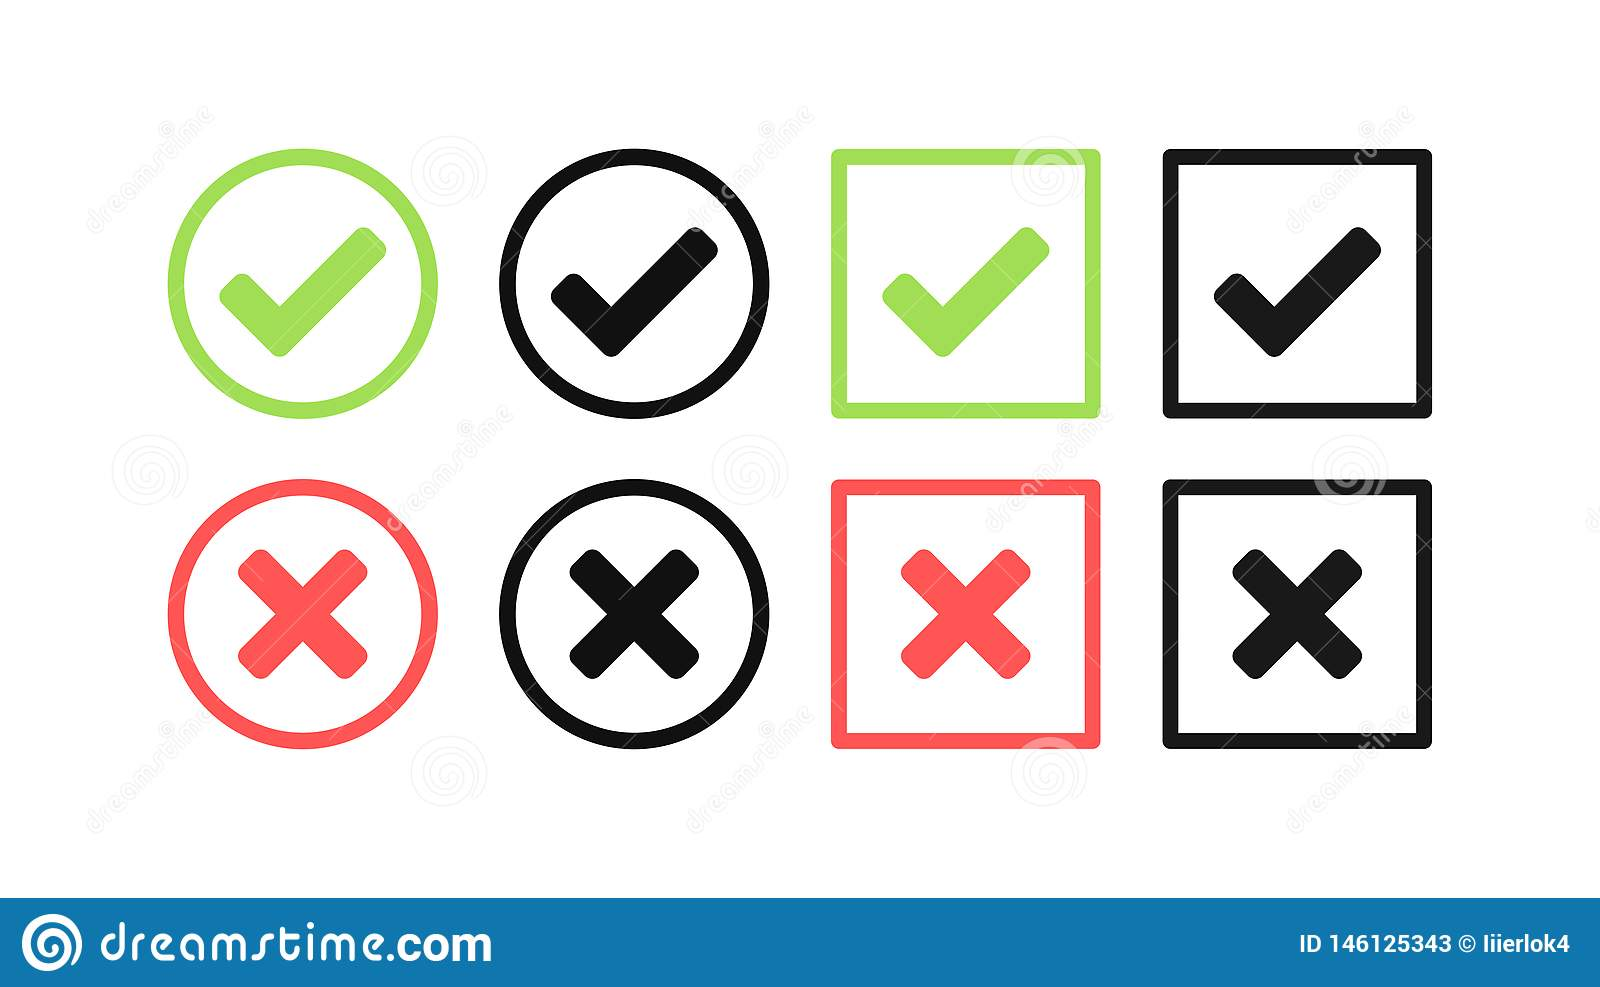 Green Check Mark And Red Cross Icon Set  Circle And Square  Tick